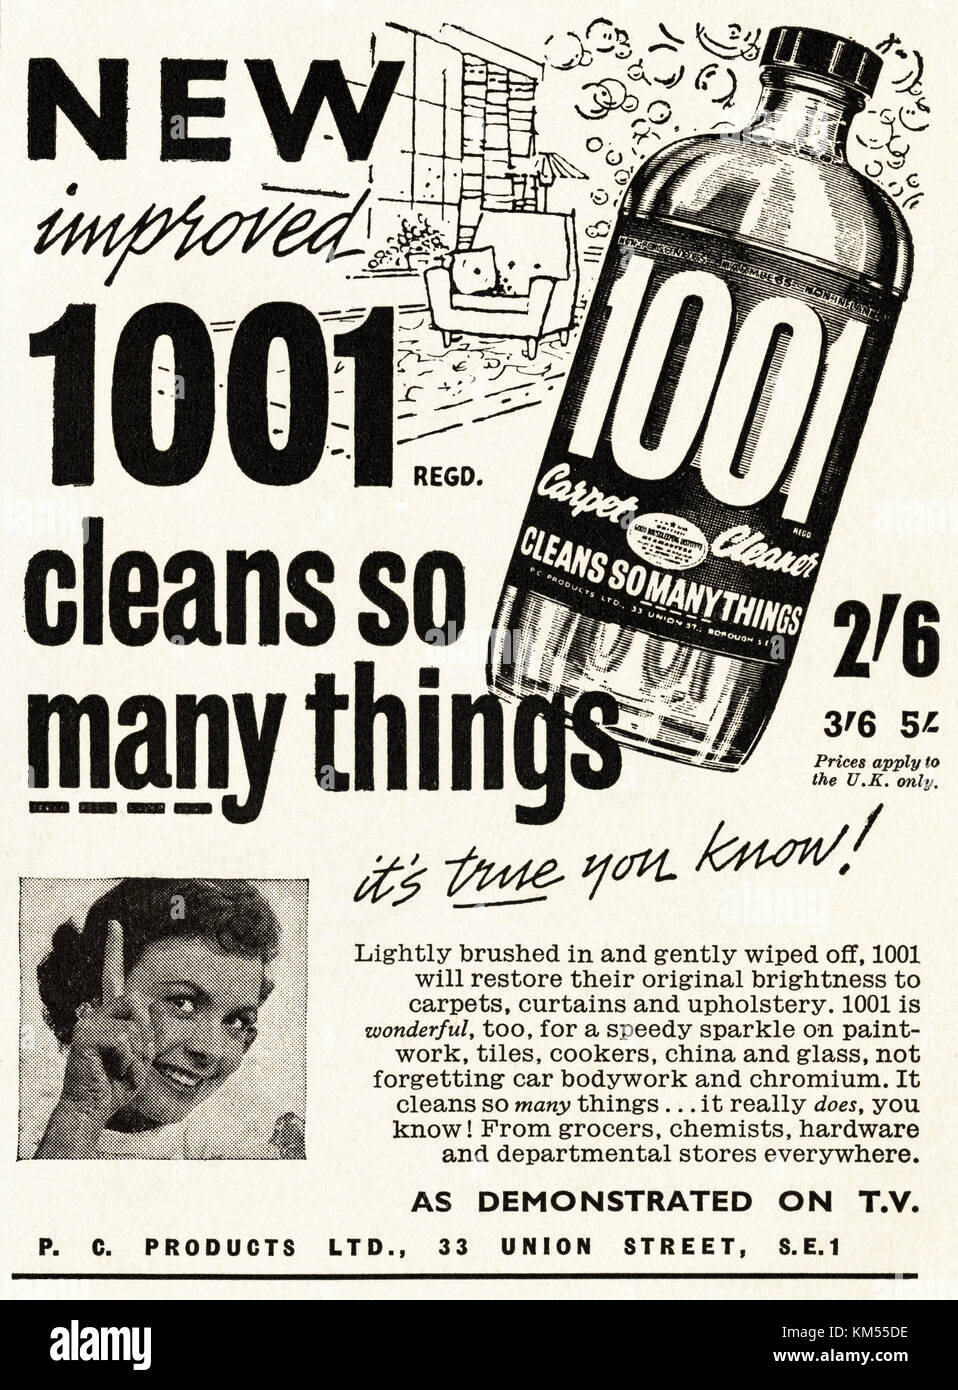 Image result for 1001 carpet cleaner for less than half a crown